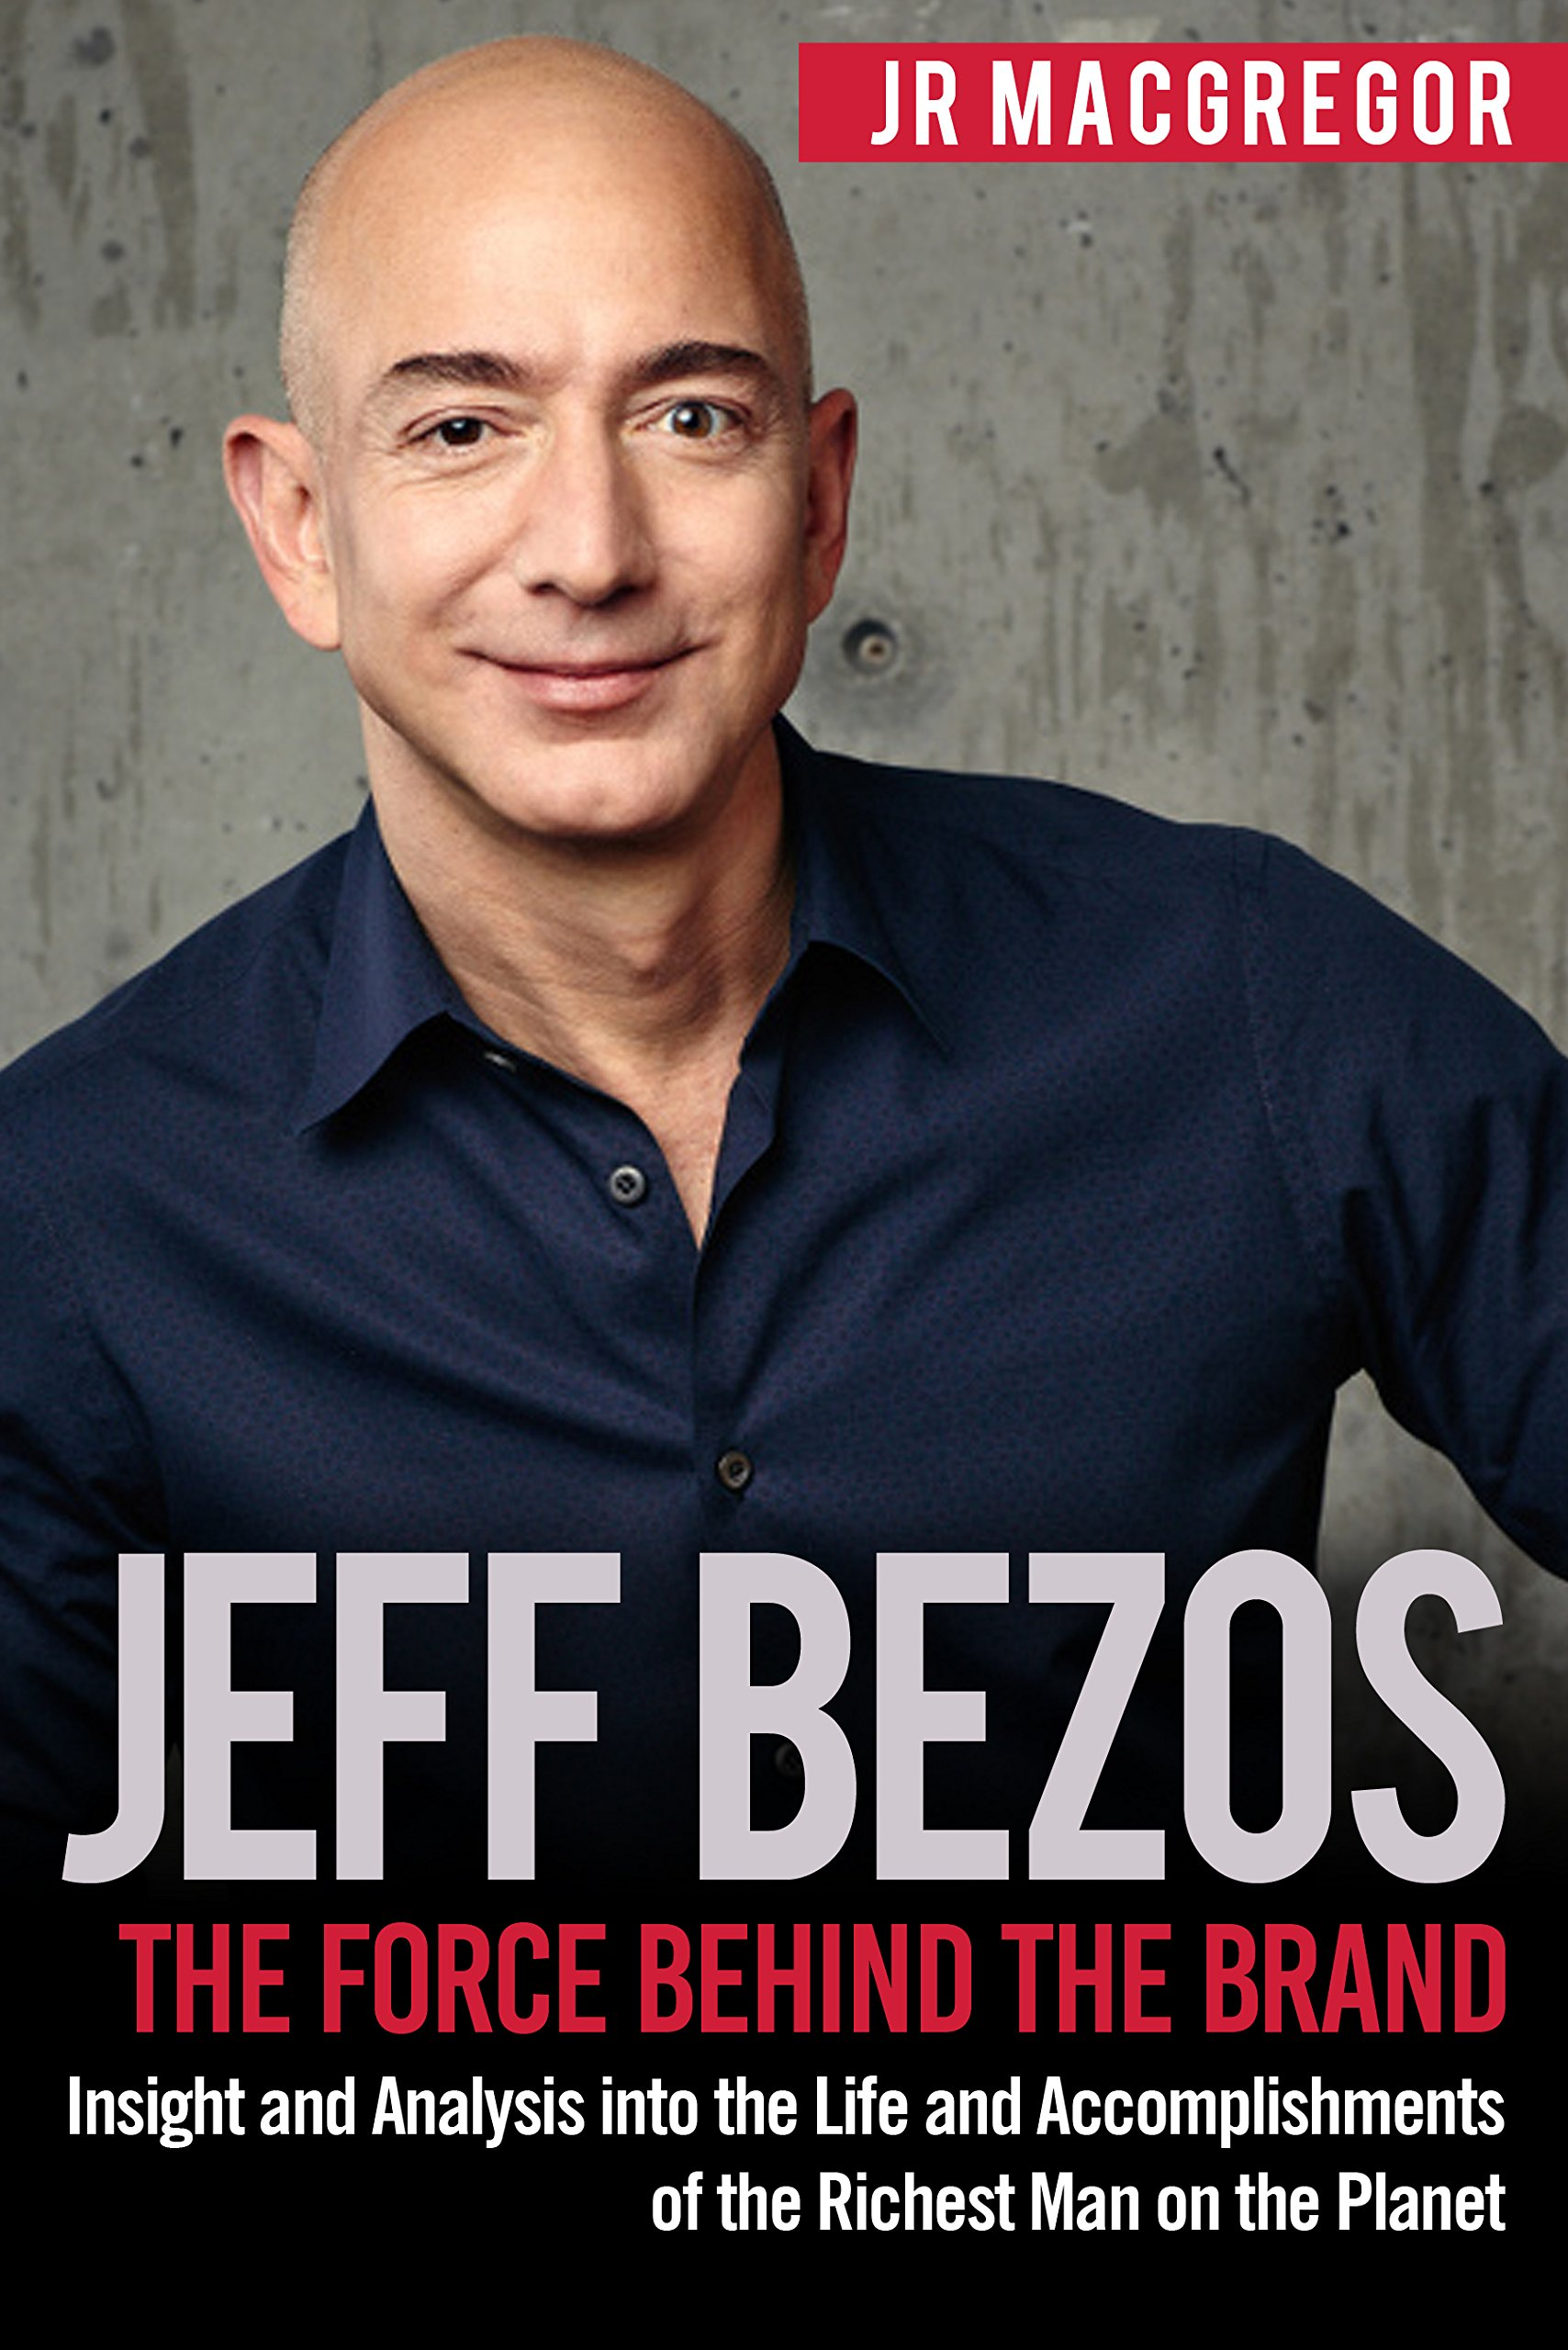 Jeff Bezos: The Force Behind the Brand: Insight and Analysis into the Life and Accomplishments of the Richest Man on the Planet (Billionaire Visionaries)